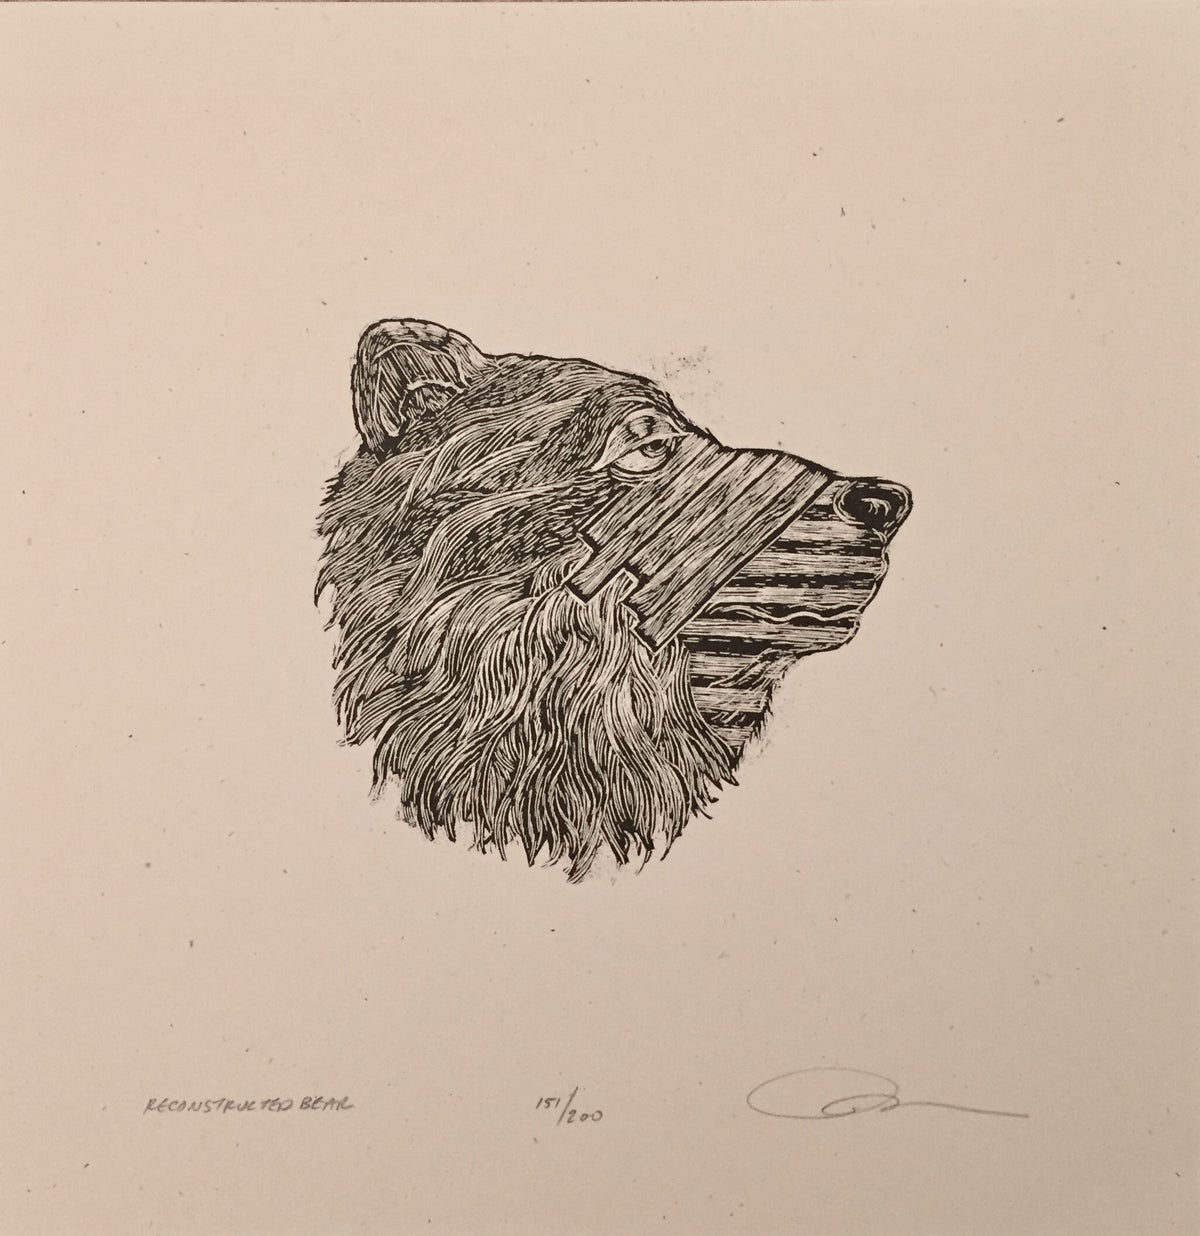 Reconstructed bear